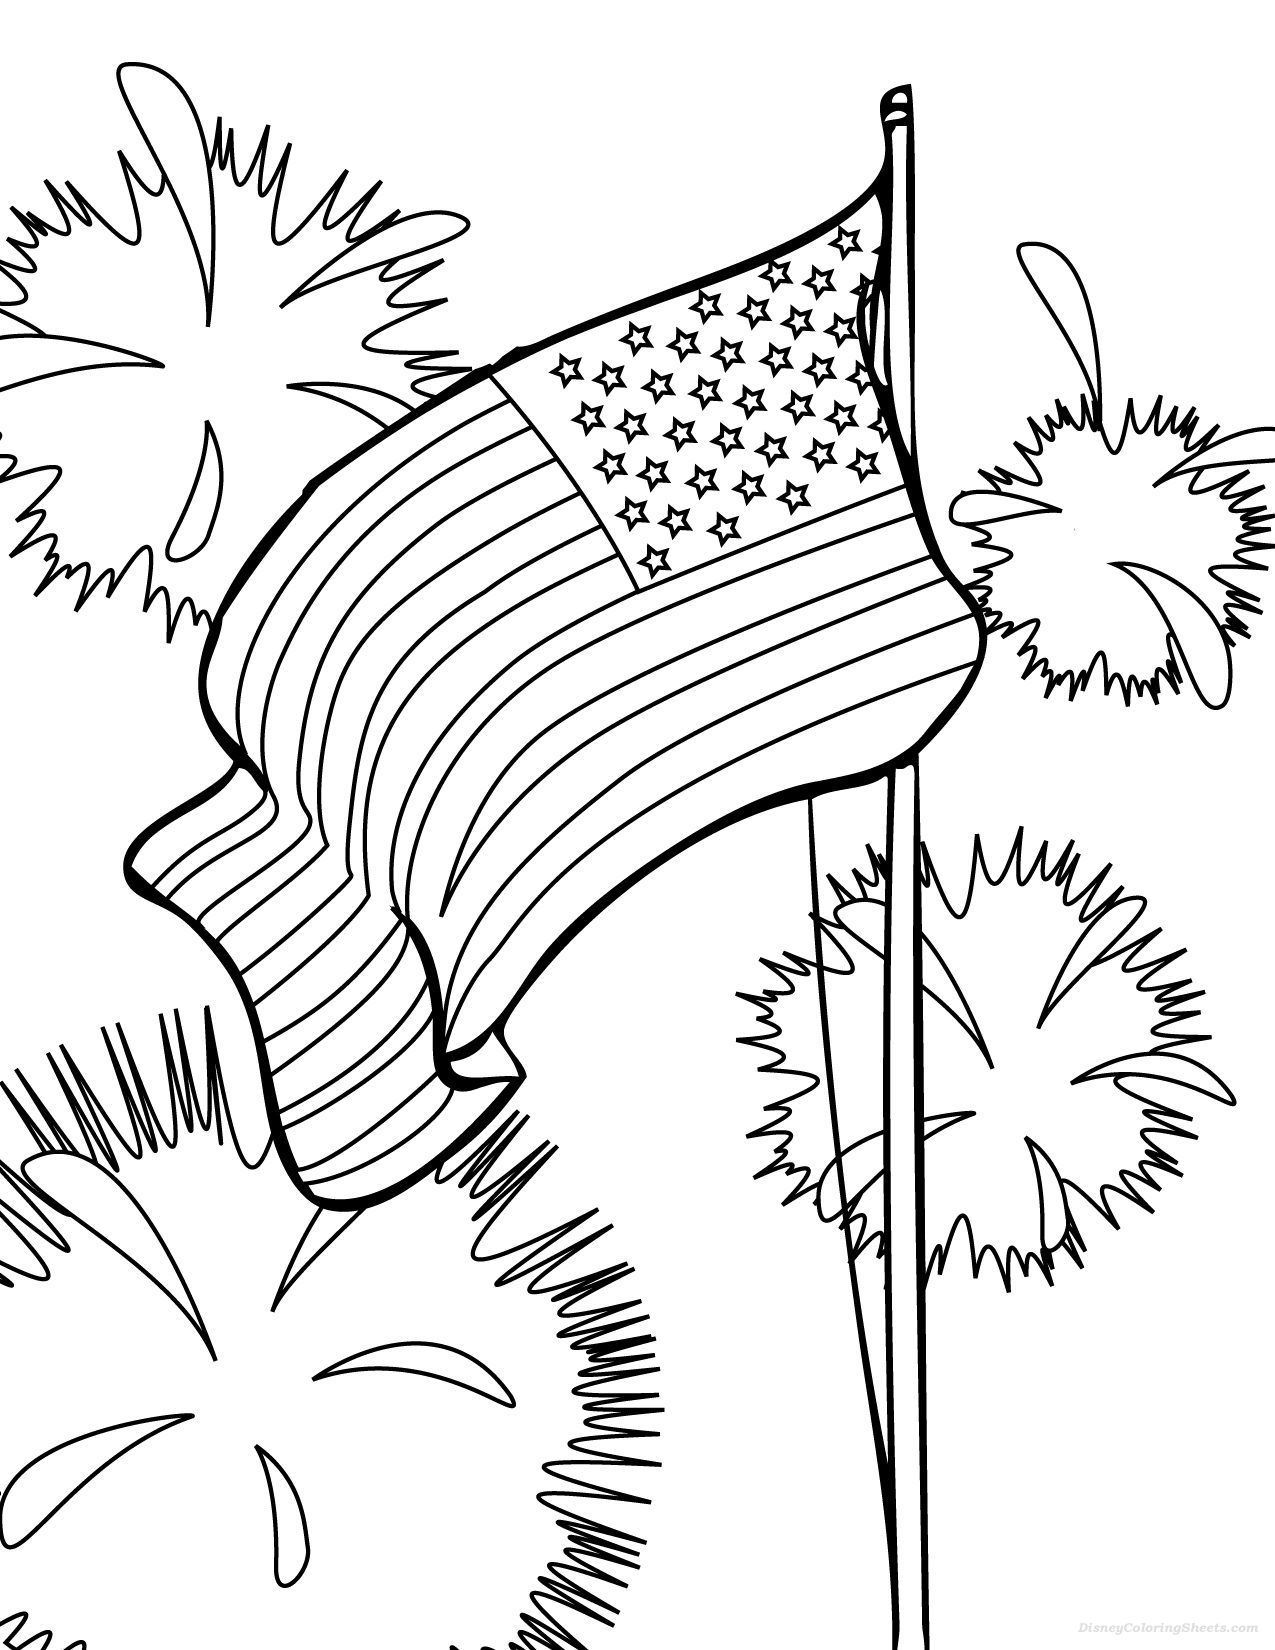 Us Flag Coloring Pages Pdf Coloring Panda Flag Coloring Pages